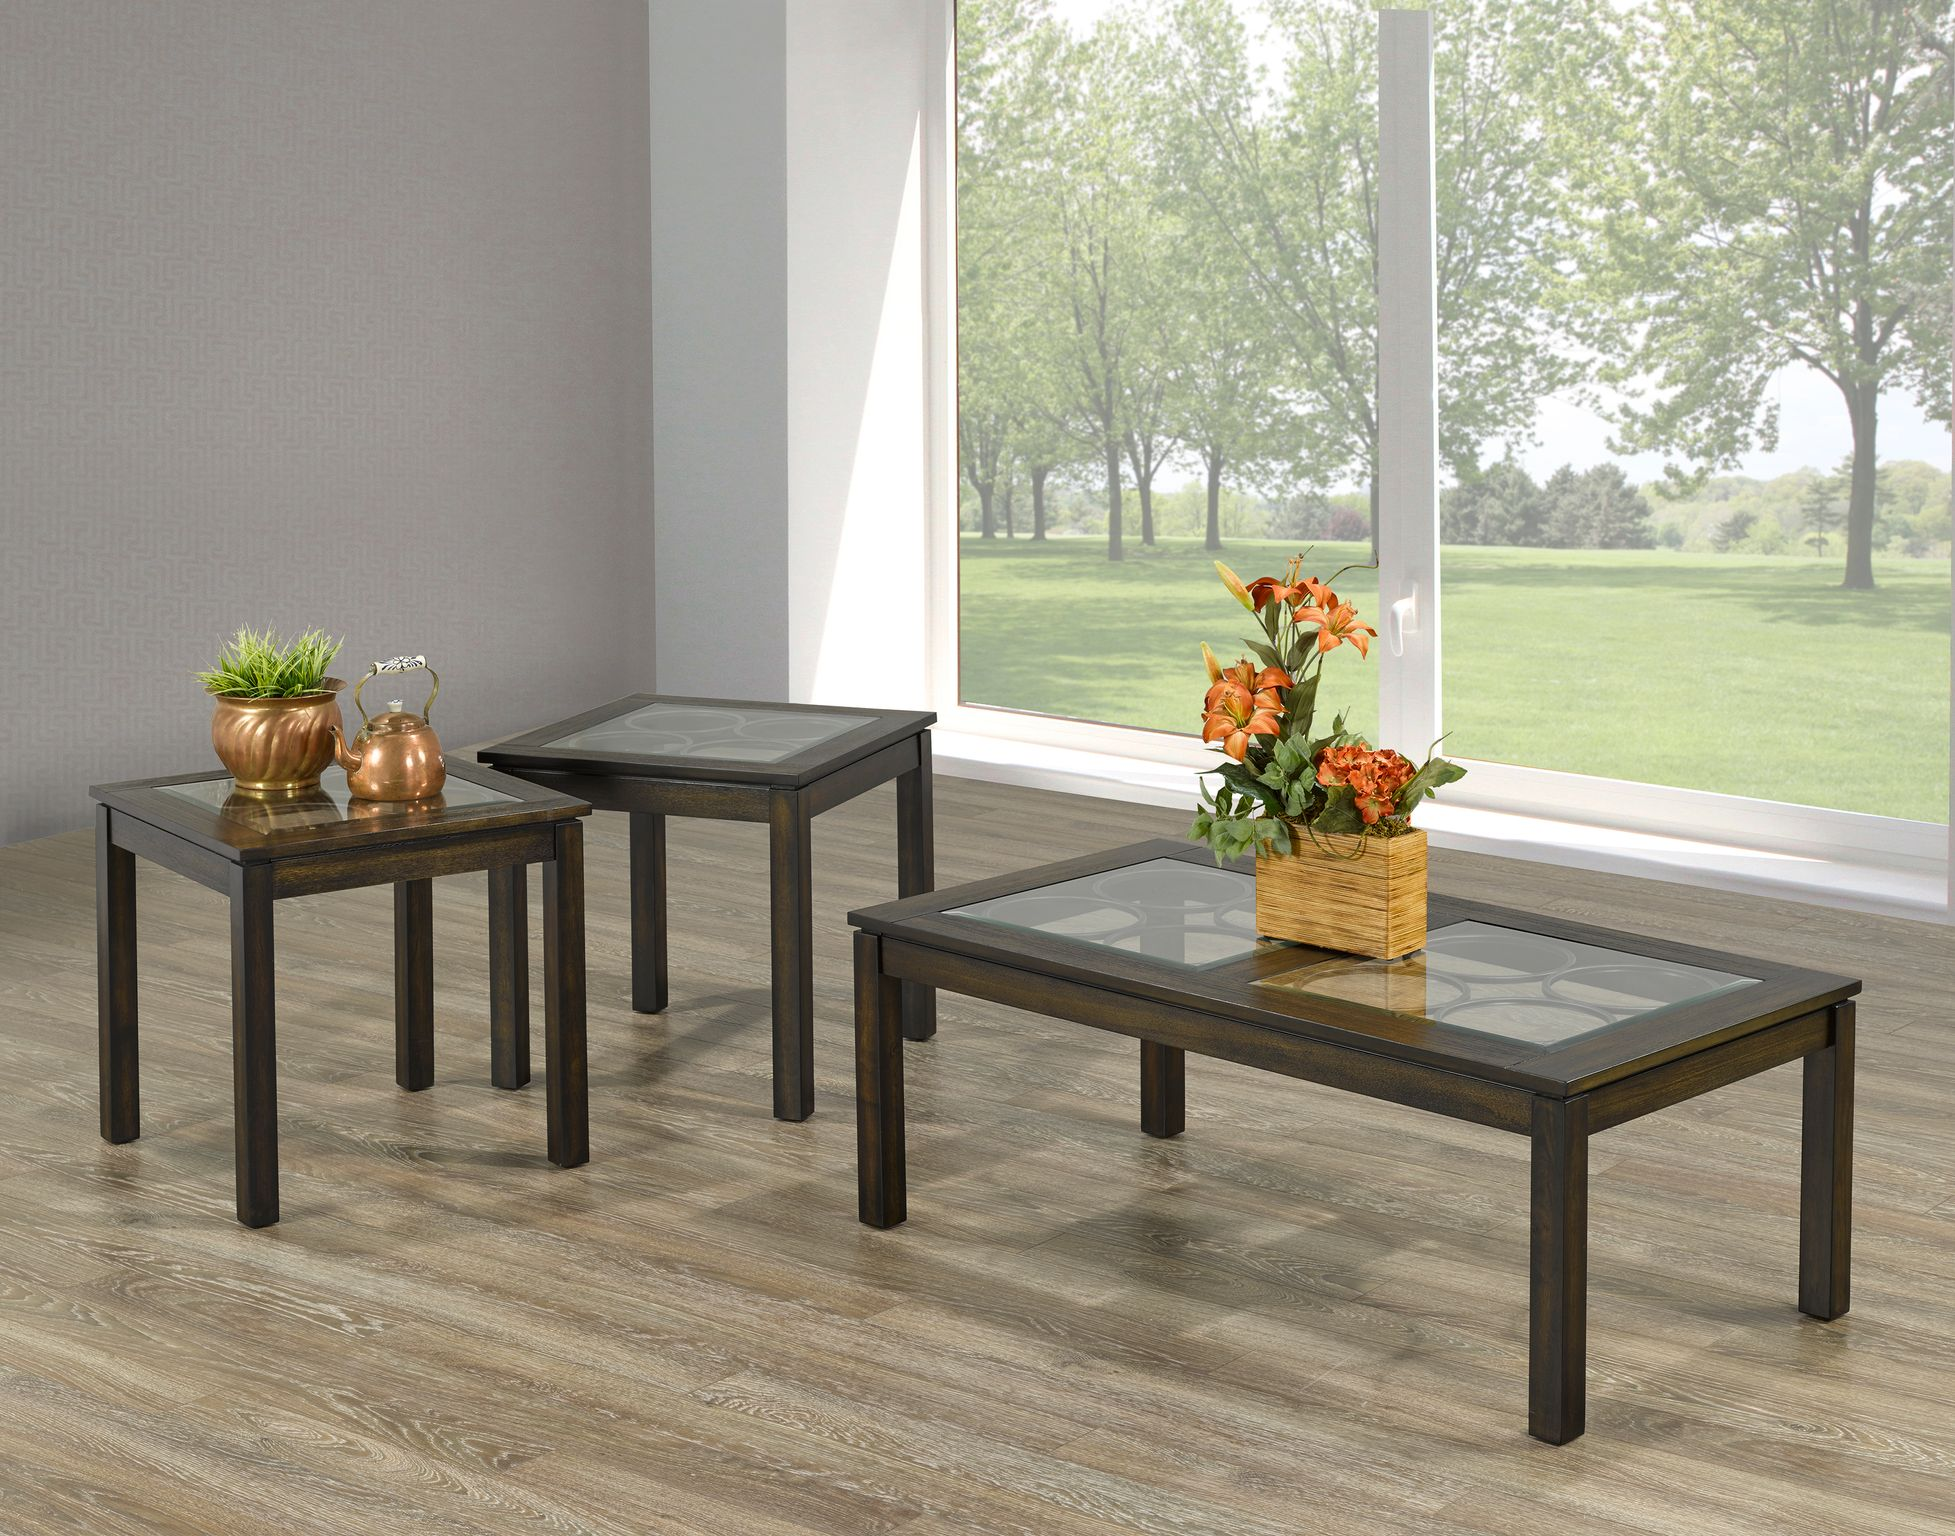 3 PIECE COFFEE TABLE SET - ESPRESSO